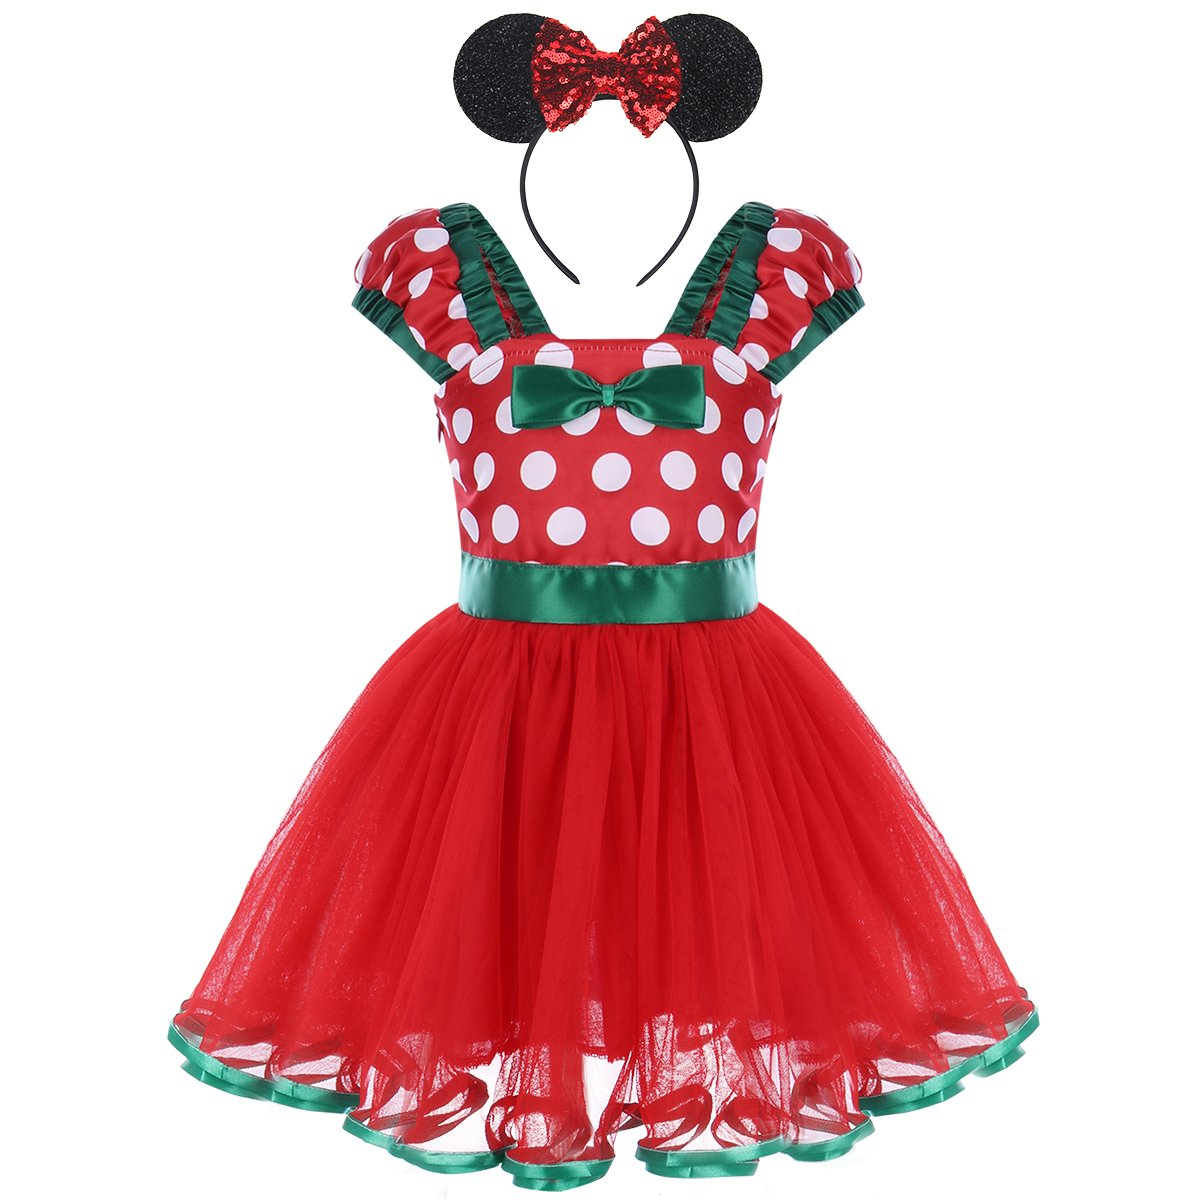 OBEEII Baby Girls Polka Dots Princess Fancy Dress + Headband for Pageant Holloween Christmas Carnival Festival Birthday Party Cosplay Costumes for Toddler Kids 1-4 Years